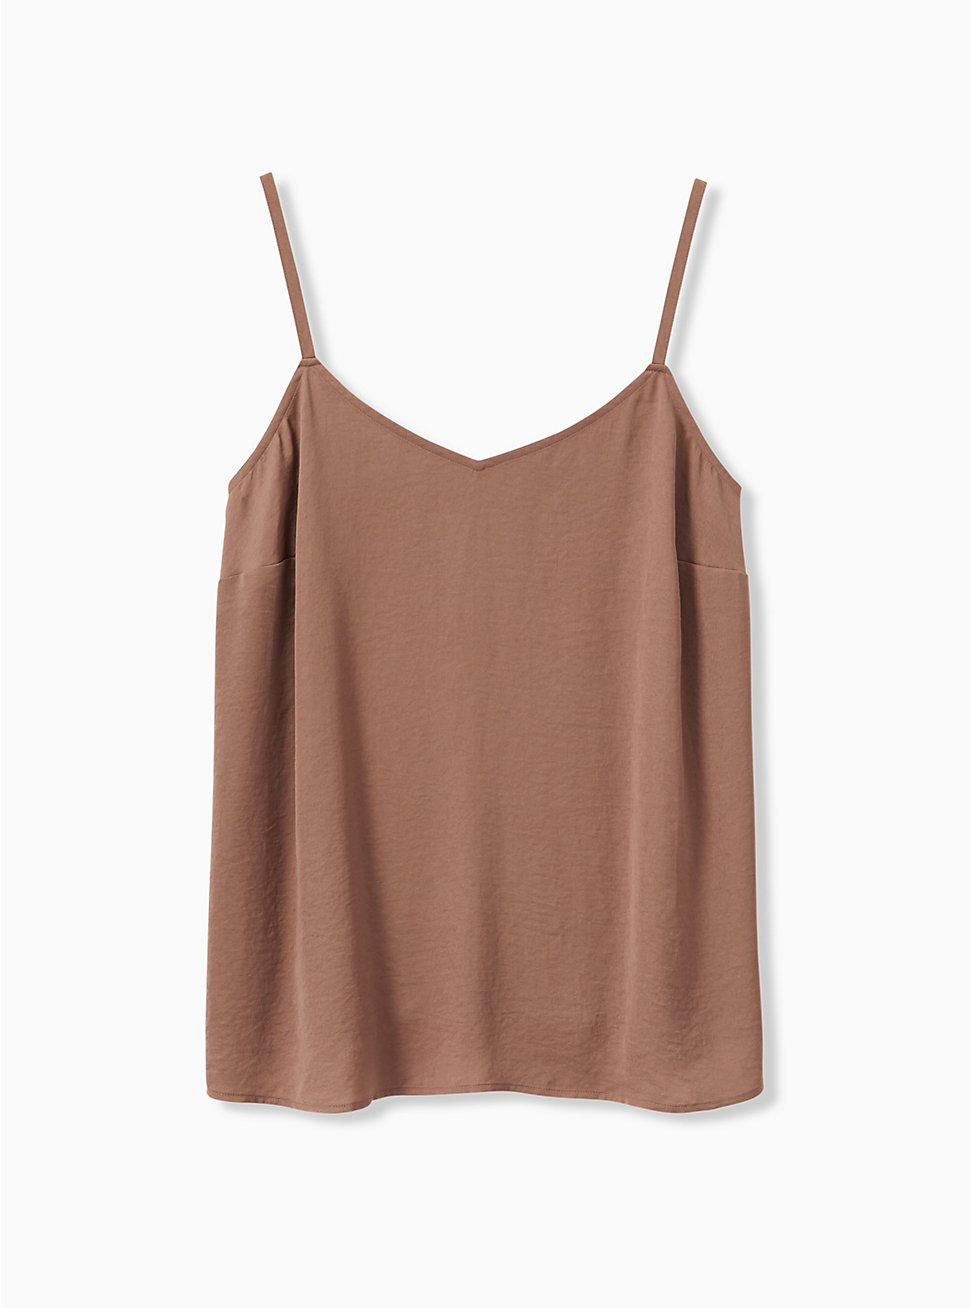 Sophie - Dark Taupe Textured Swing Cami, DEEP TAUPE, hi-res